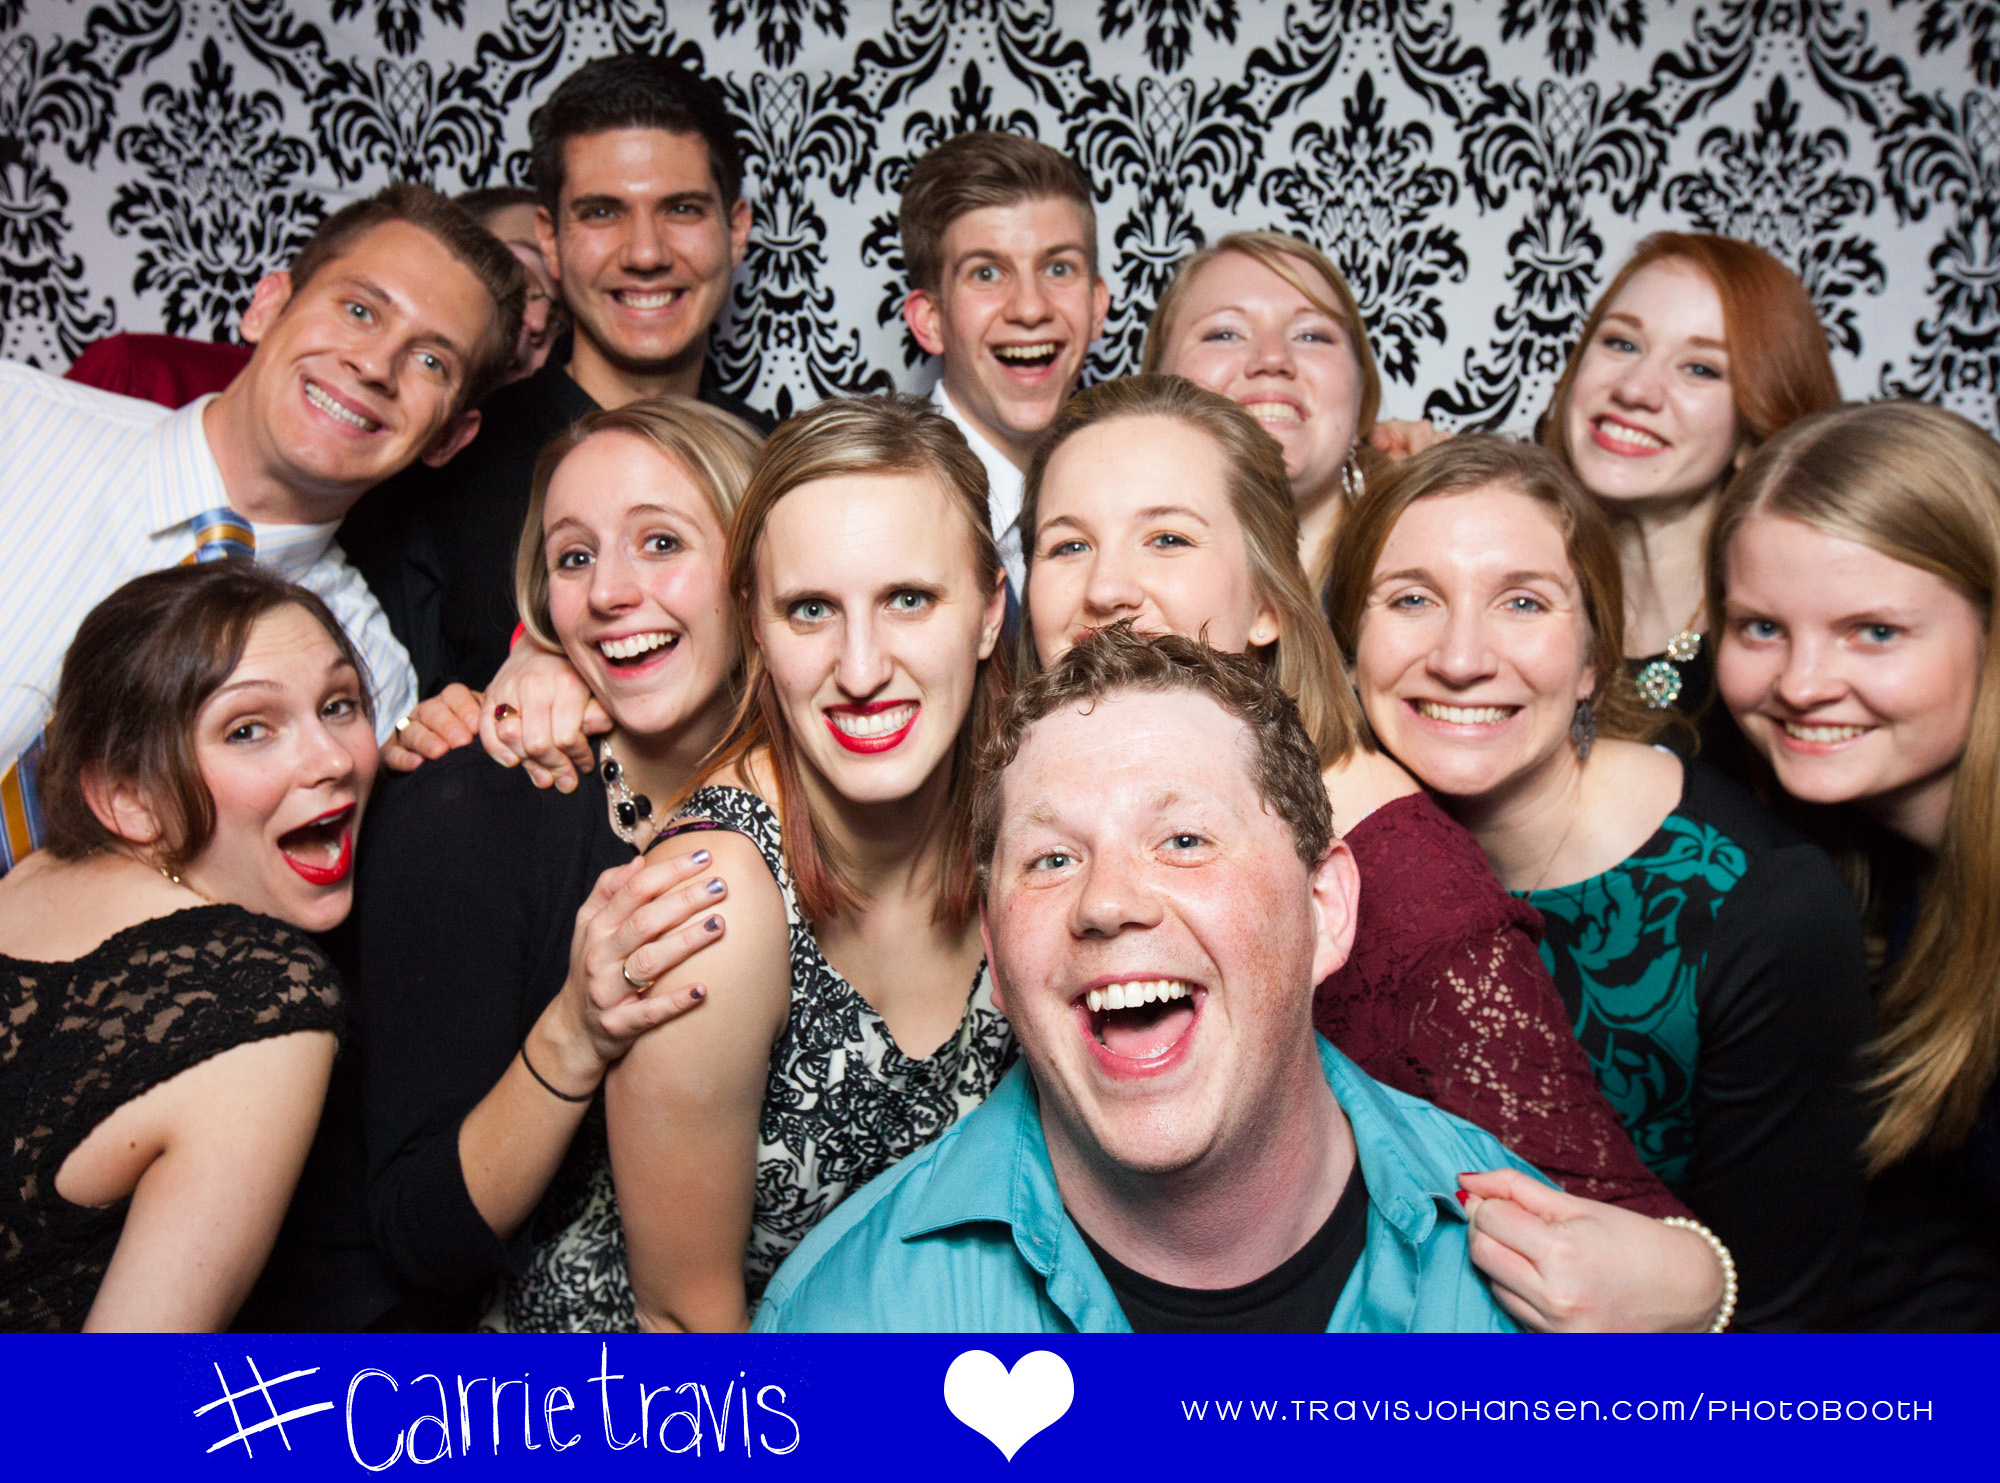 Group friendly photobooth MN based